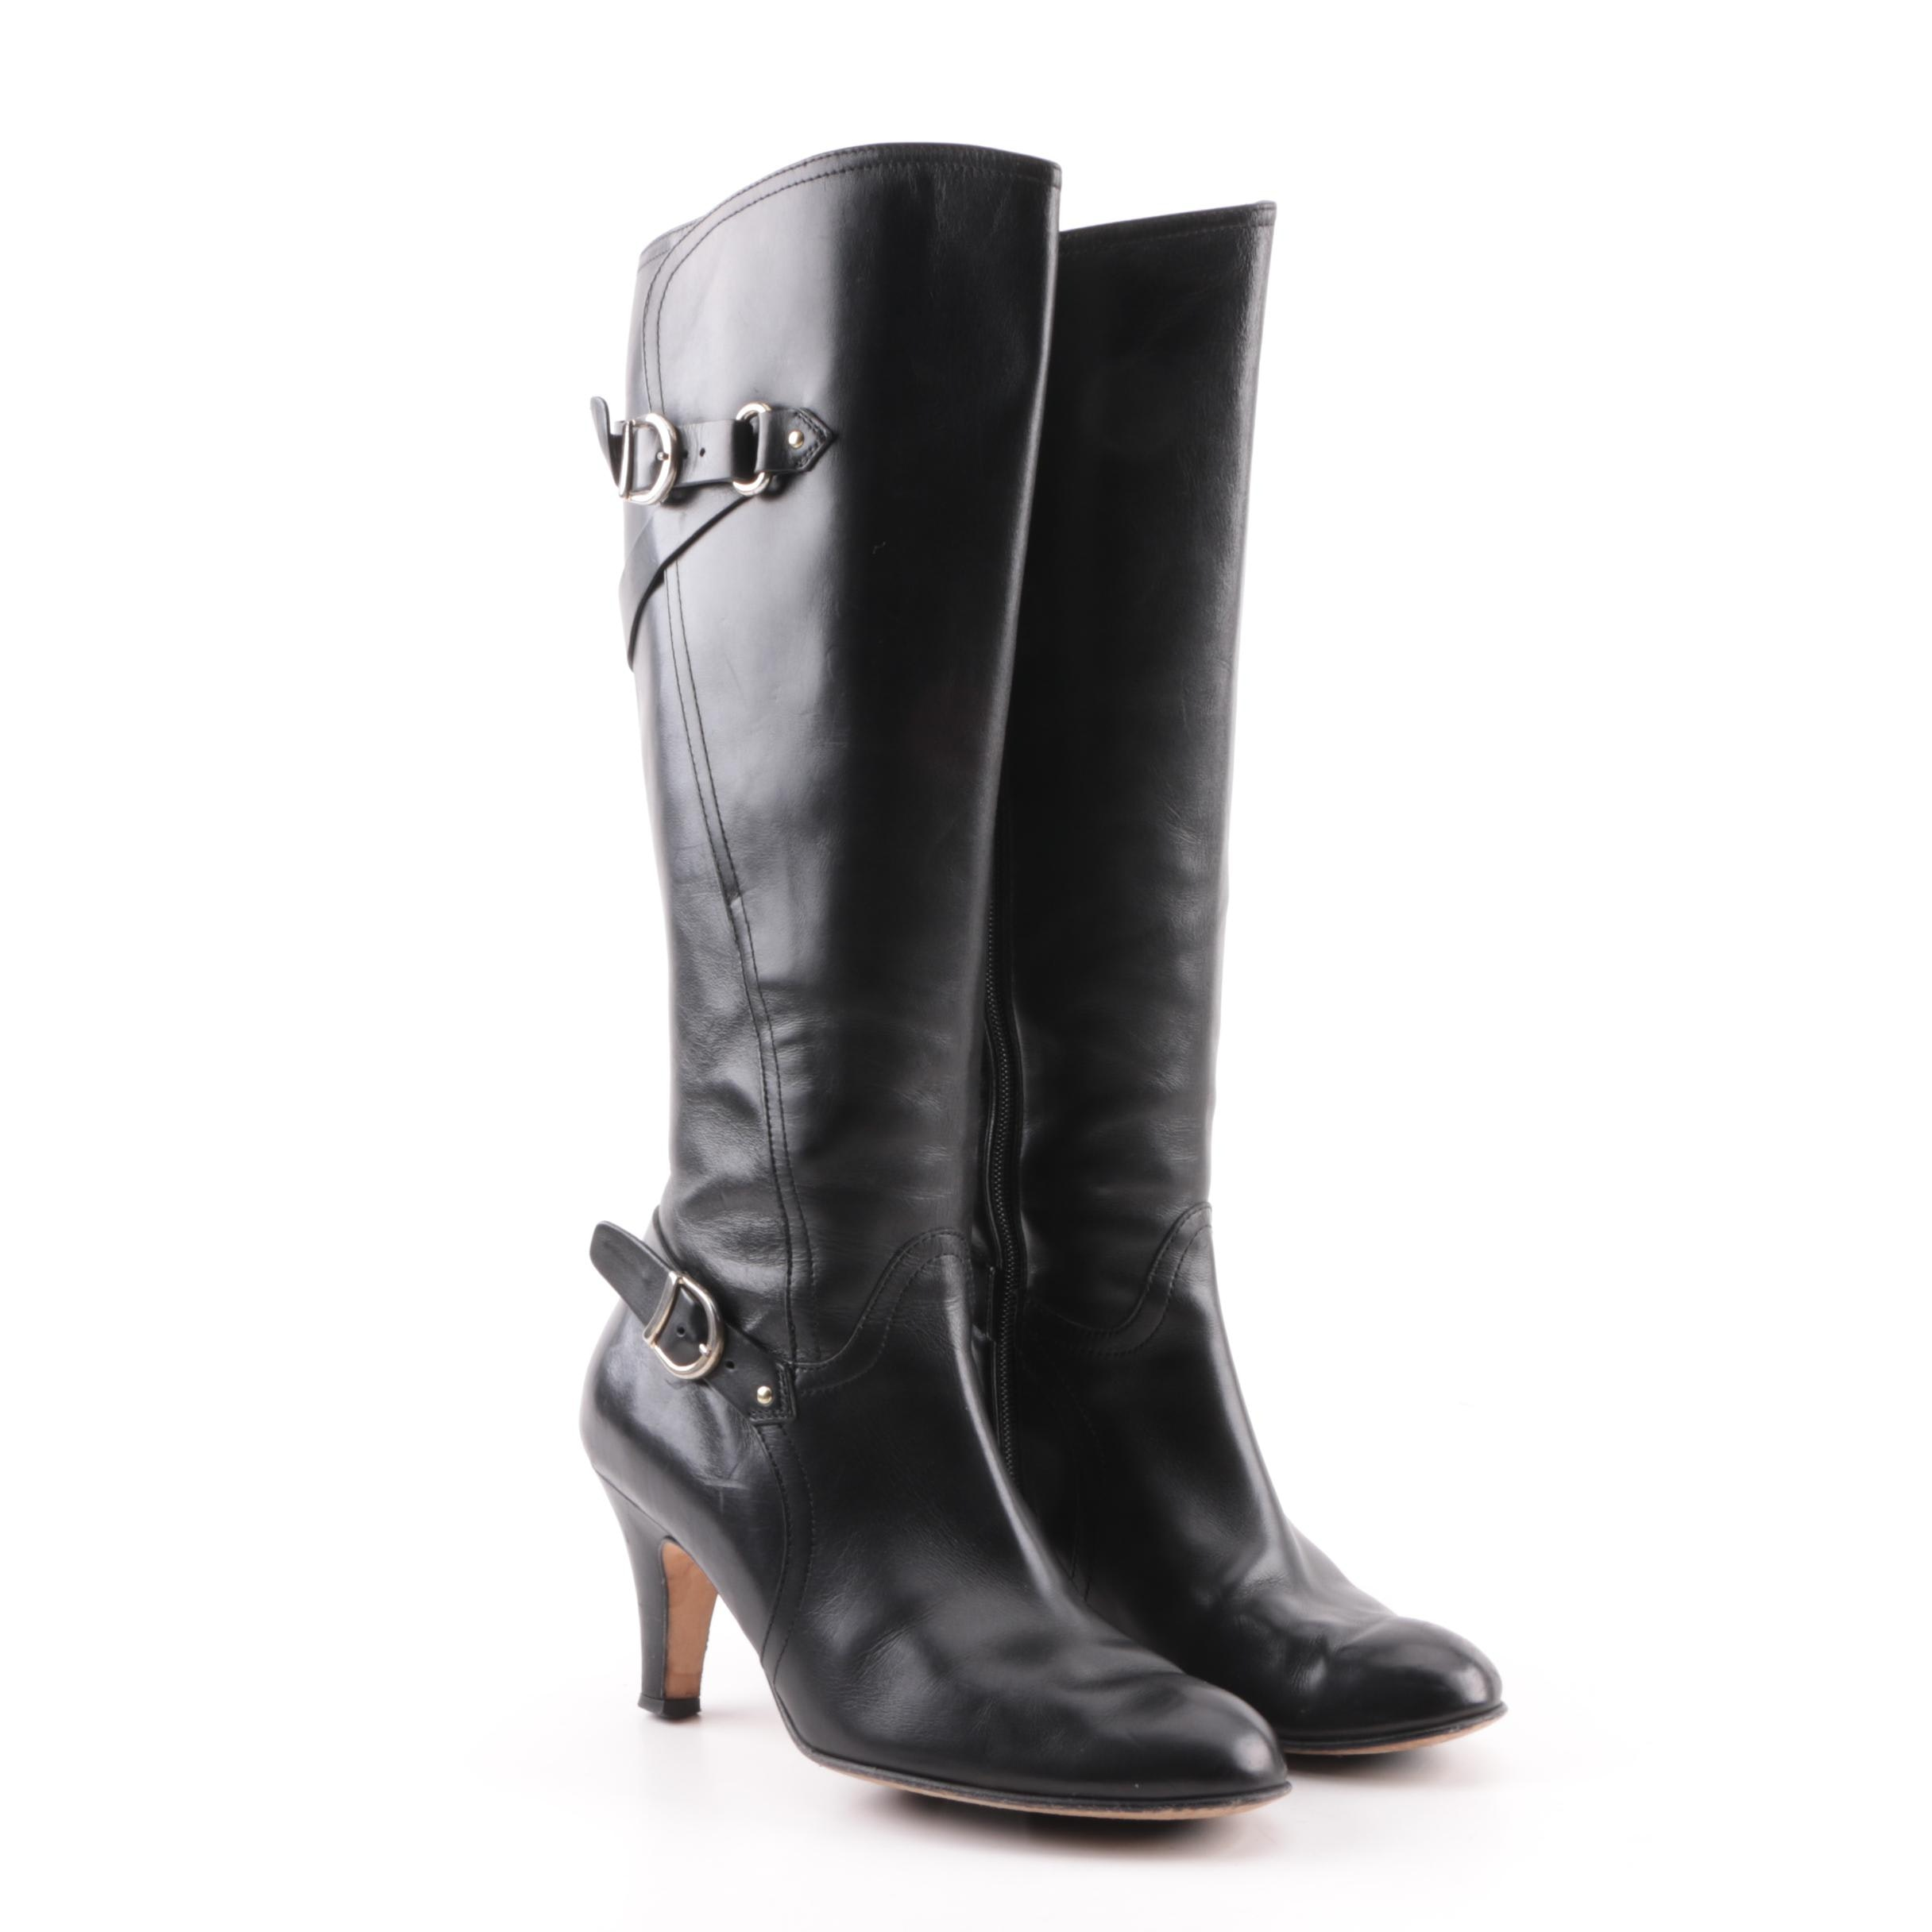 Women's Anyi Lu Black Leather High-Heeled Tall Boots